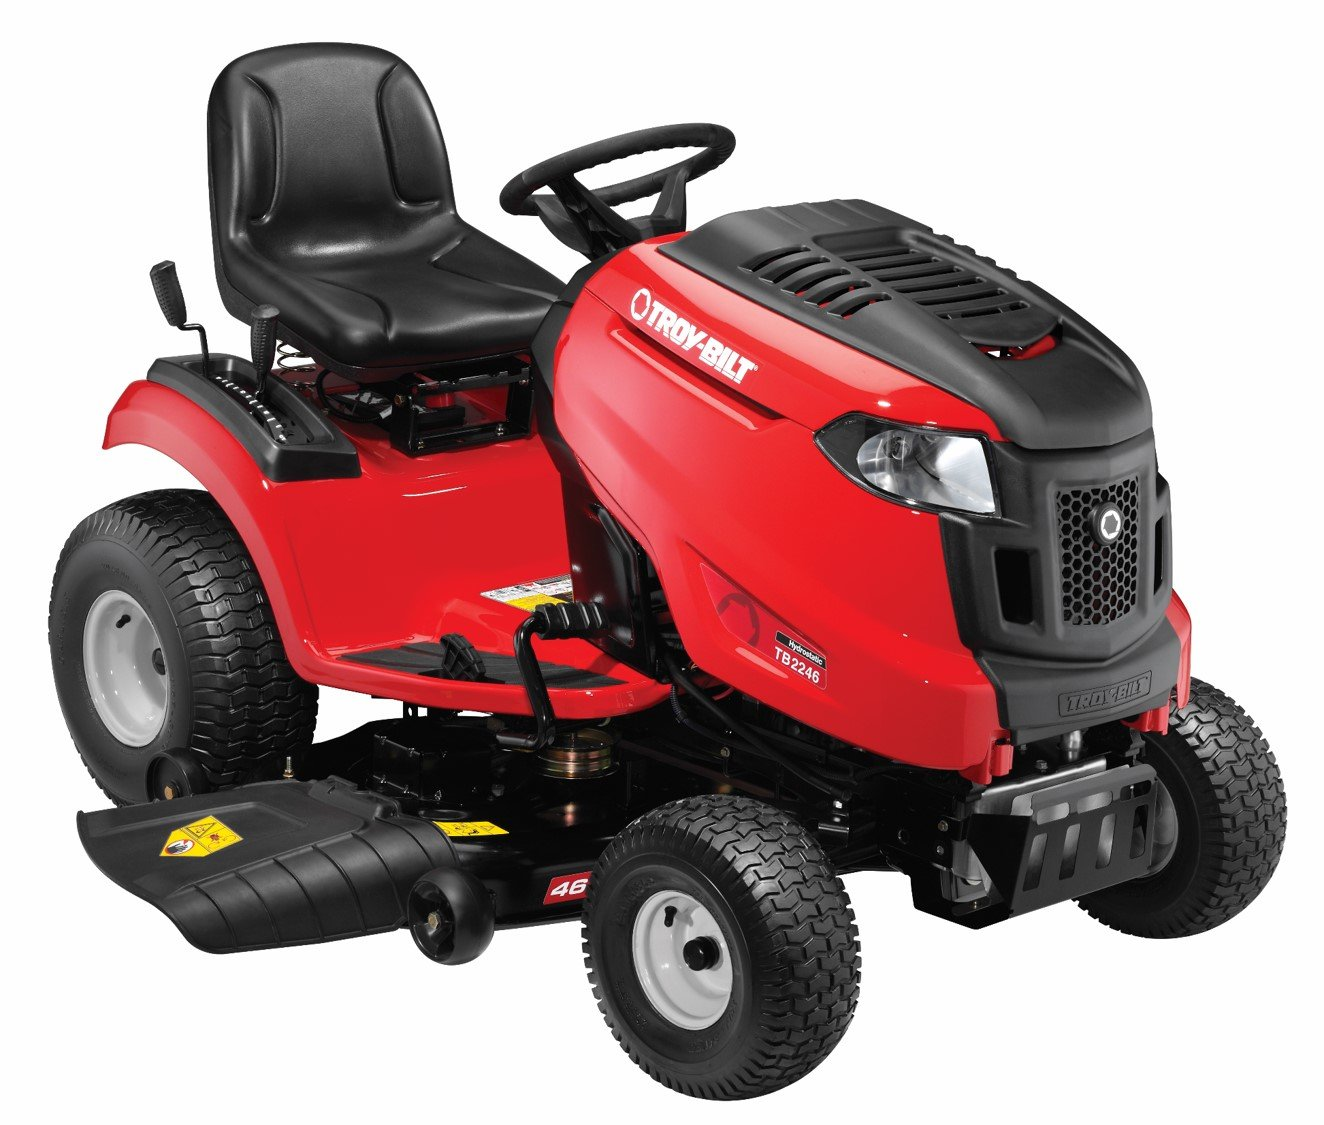 Amazon.com : Troy-Bilt TB2246 22HP/656cc Twin Cylinder Foot Hydro  Transmission 46-inch Riding Lawn Tractor : Garden & Outdoor